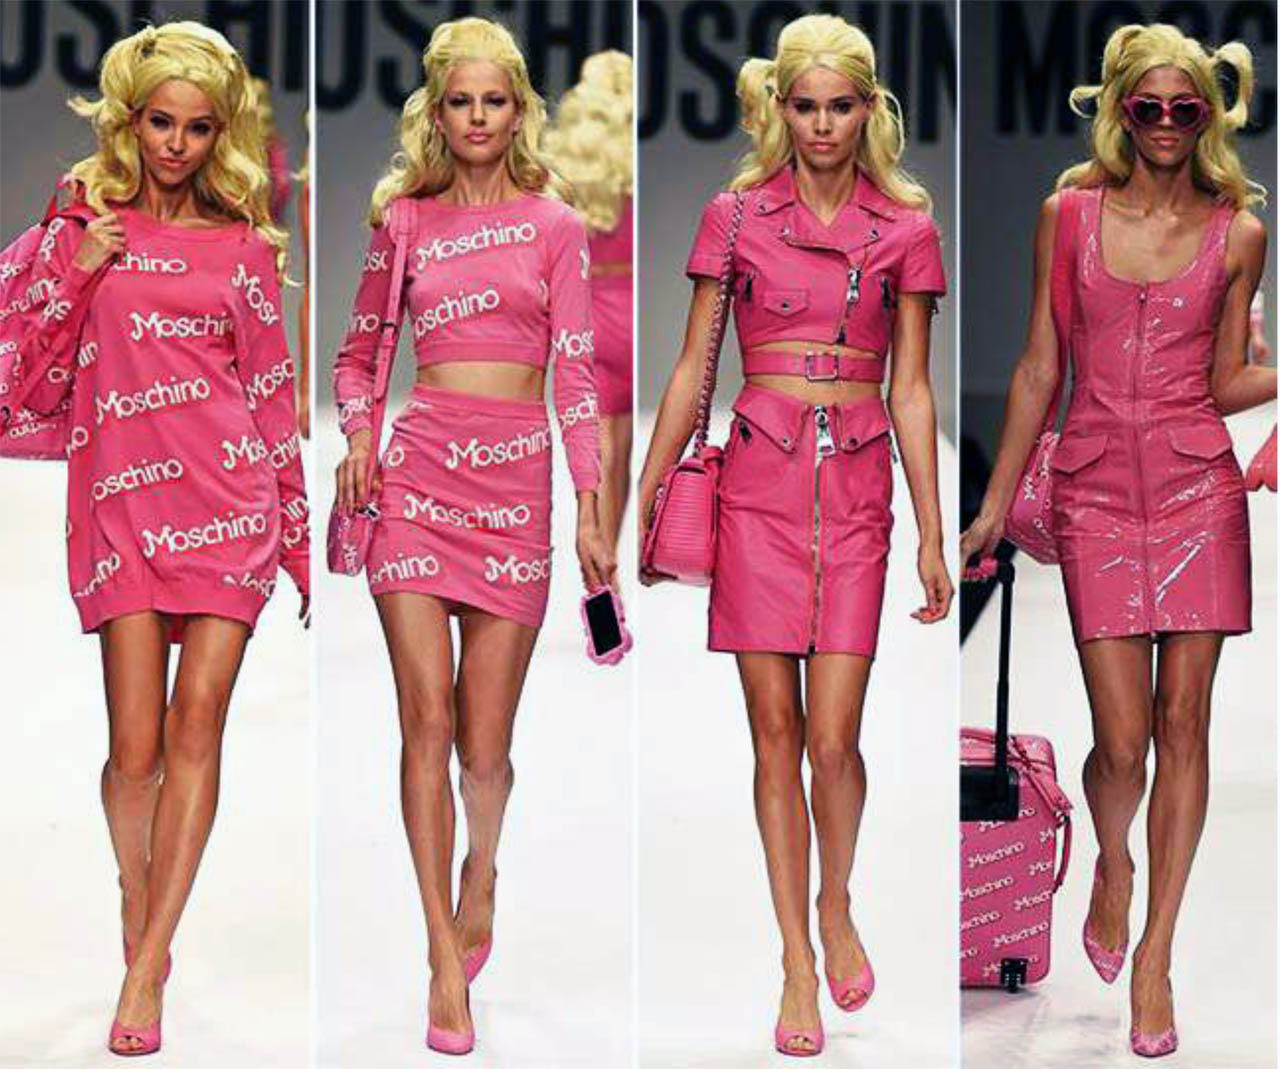 Moschino Barbie: sotto il vestito una strategia